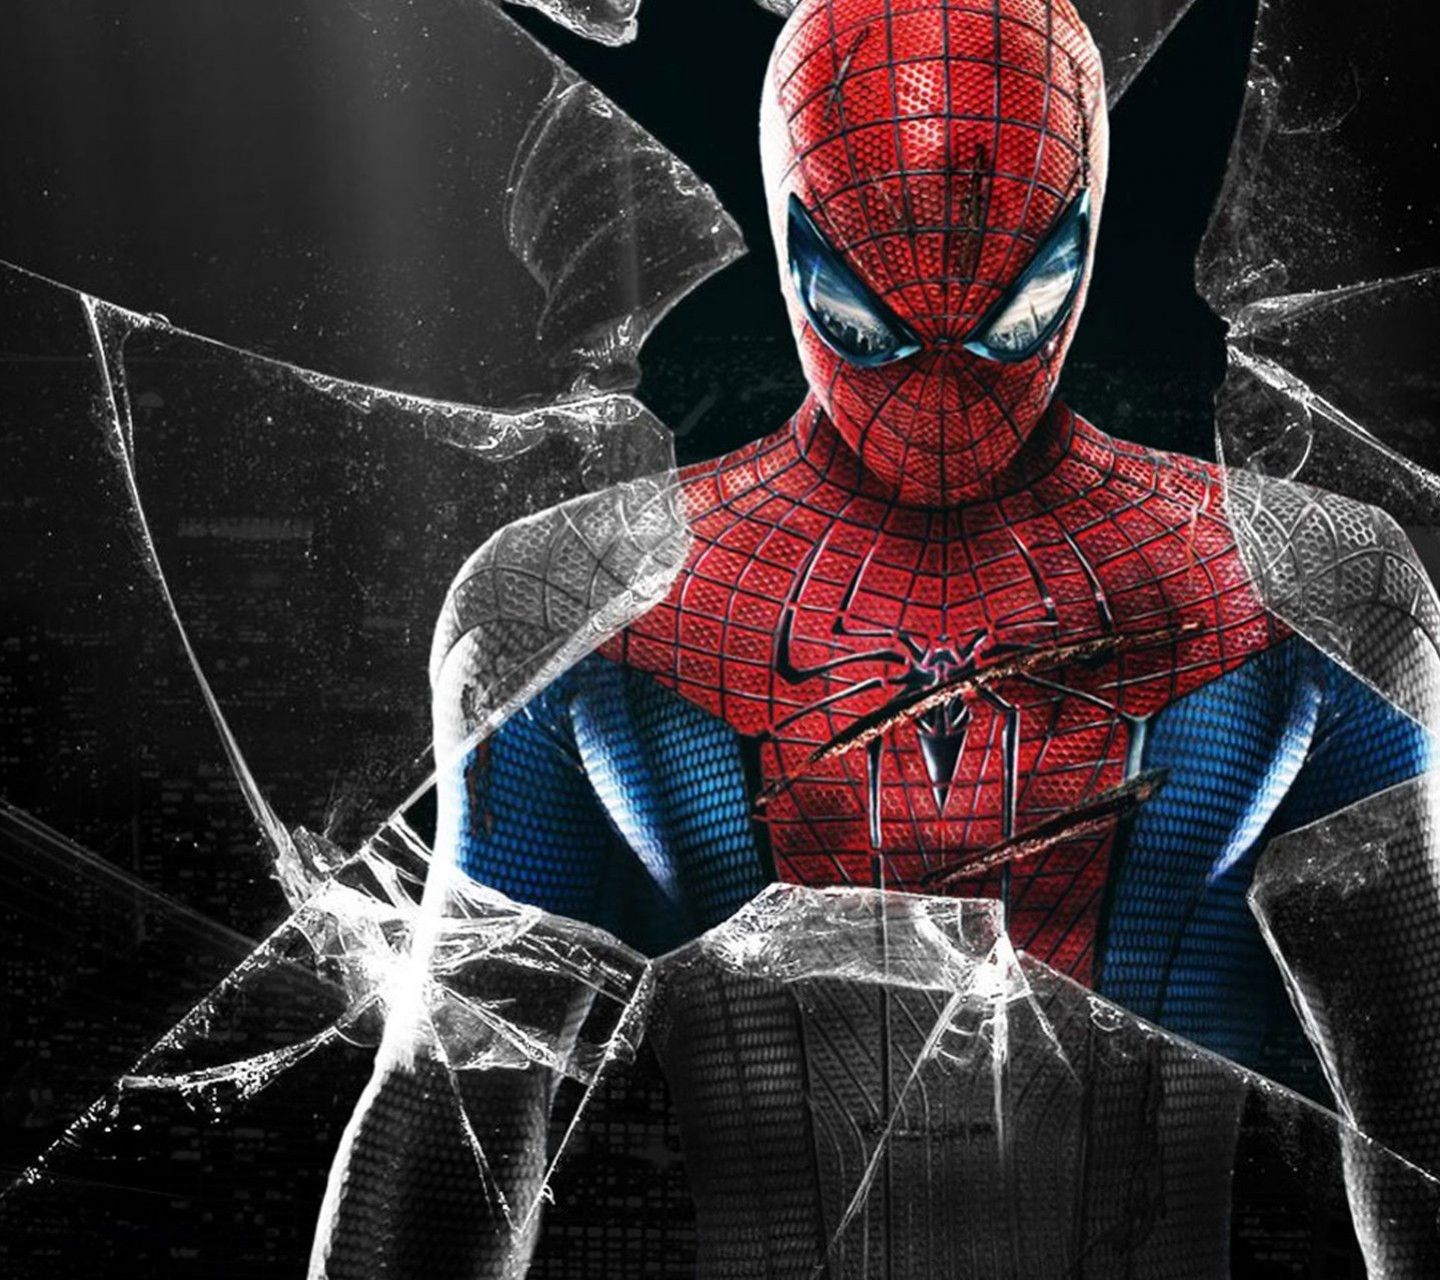 Spiderman Wallpapers For Mobile Group (51+)